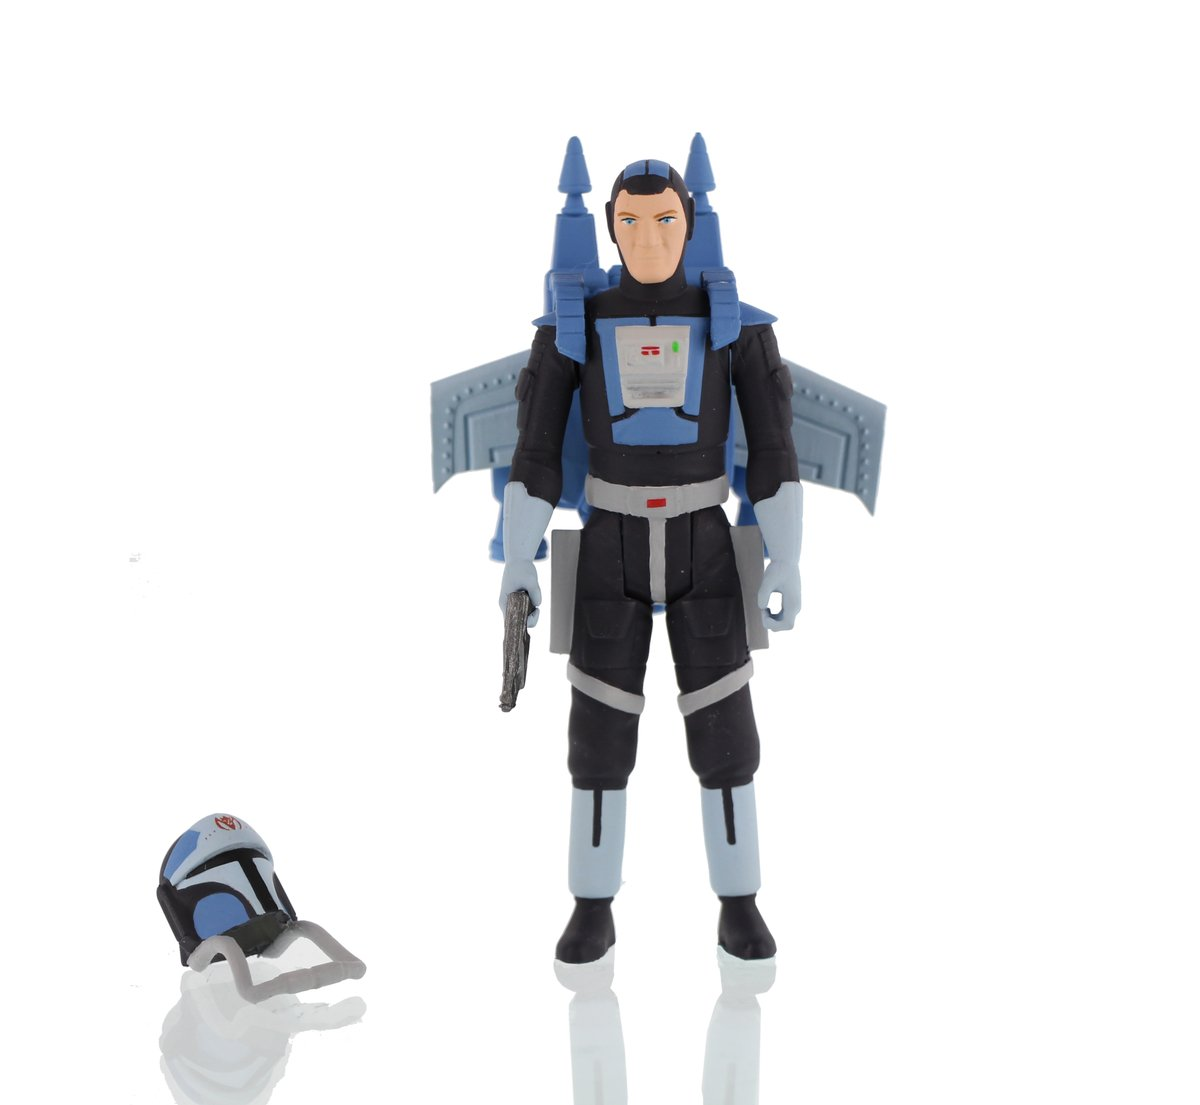 Star Wars Rebels Fenn Rau